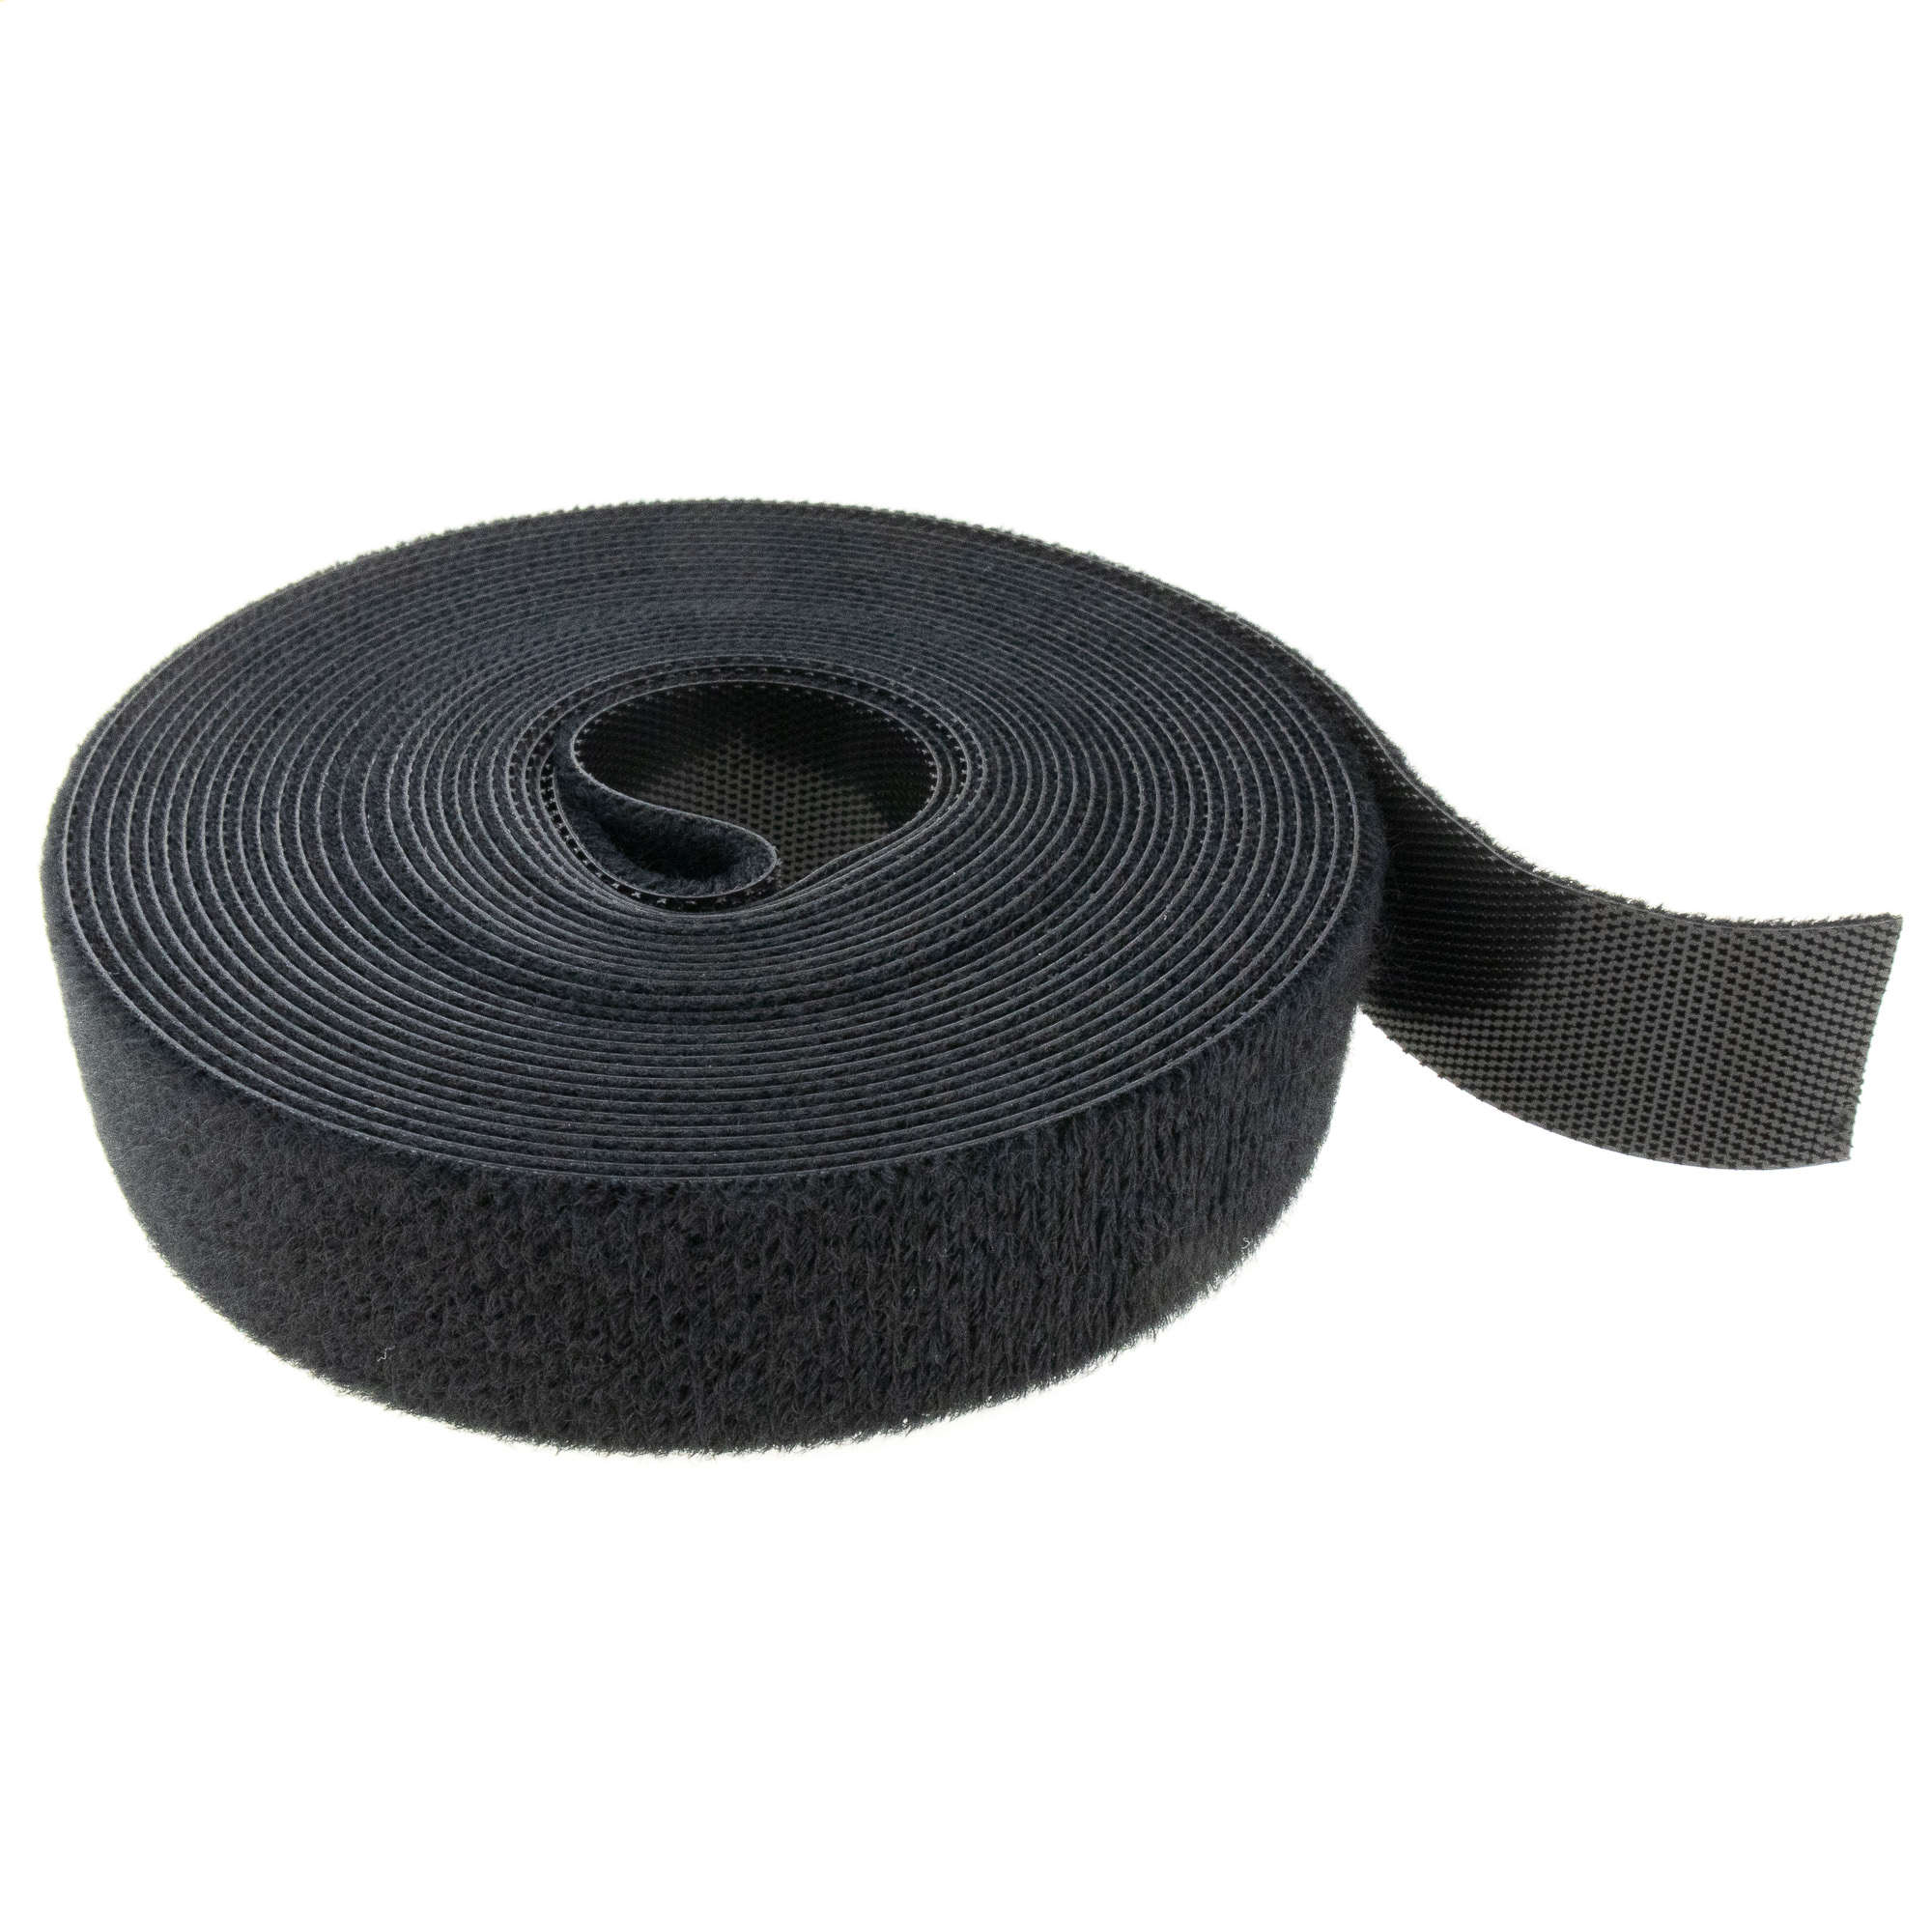 Hook-and-loop tape, 20mm, 10 meter